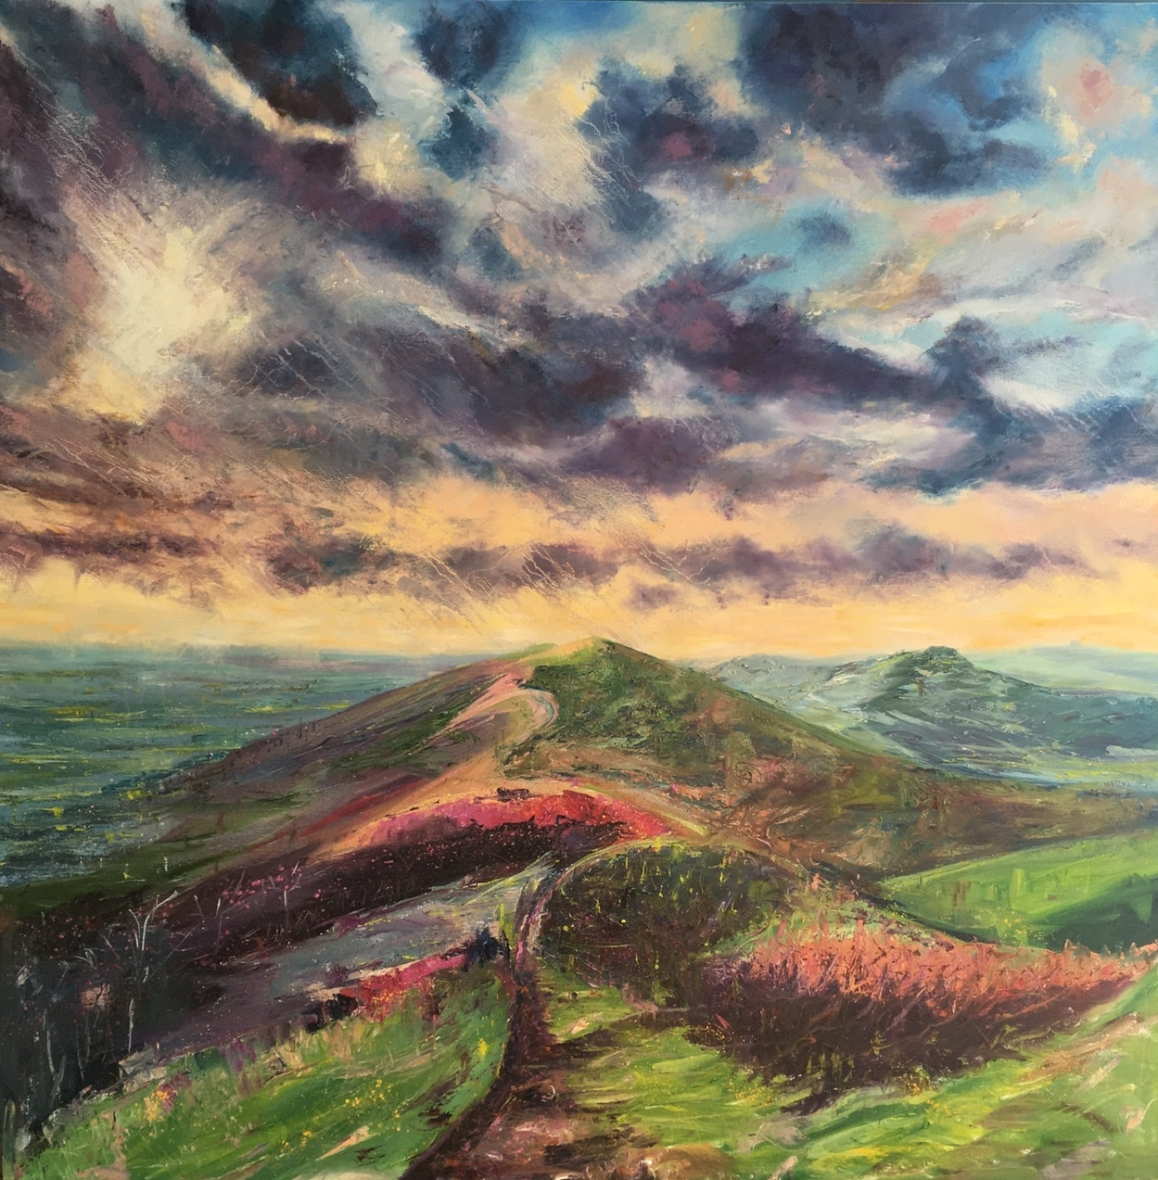 Four seasons in one day, Malvern hillls. 1m sq oil painting by contemporary artist Anna Cumming